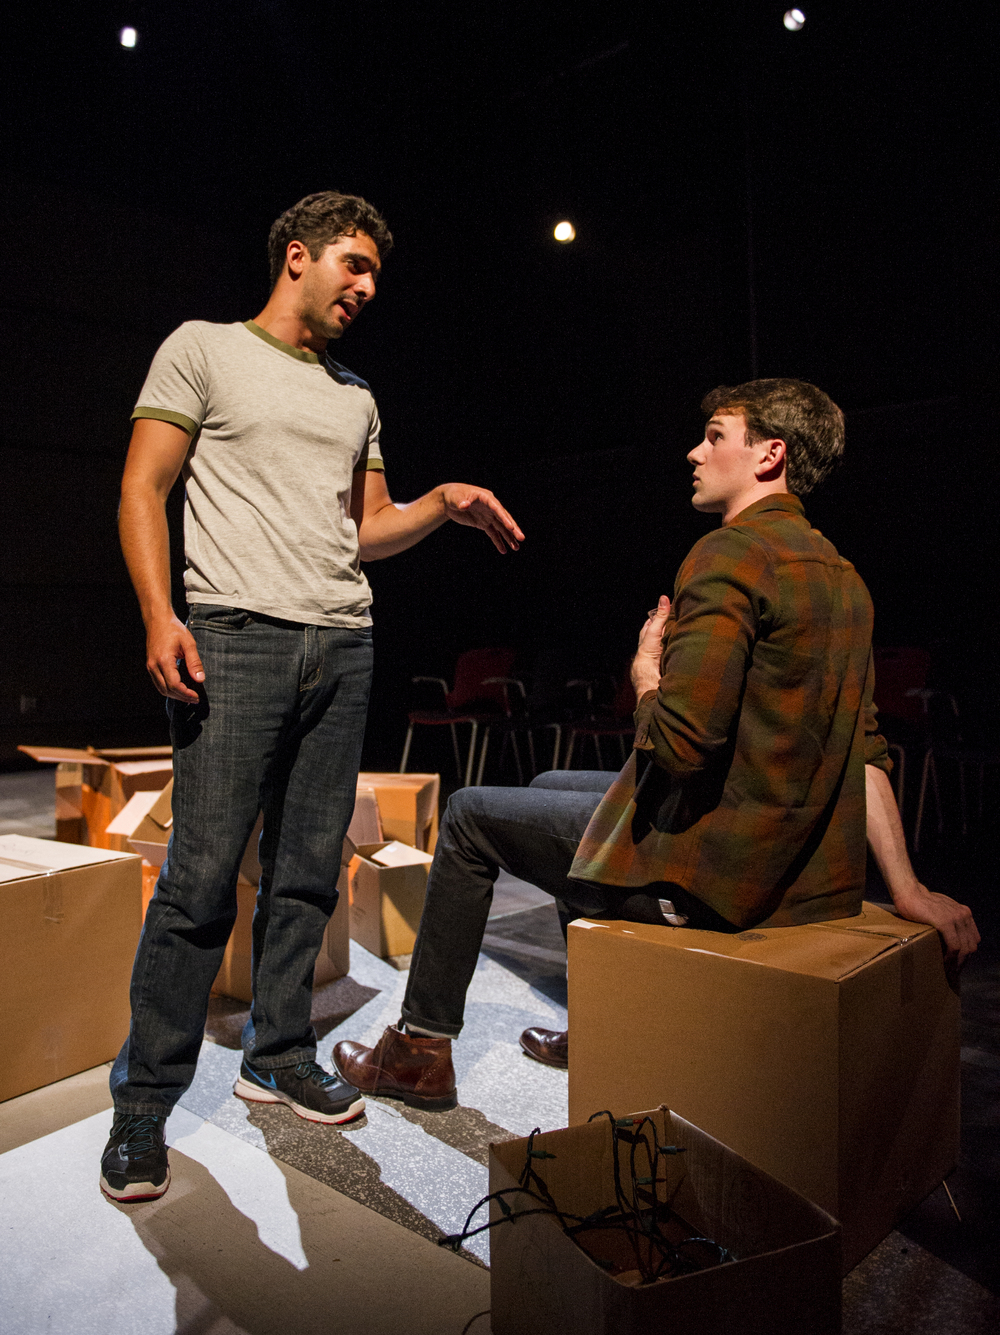 Jacob Perkins' Where Have You Gone? (2016, Williamstown Theater Festival)